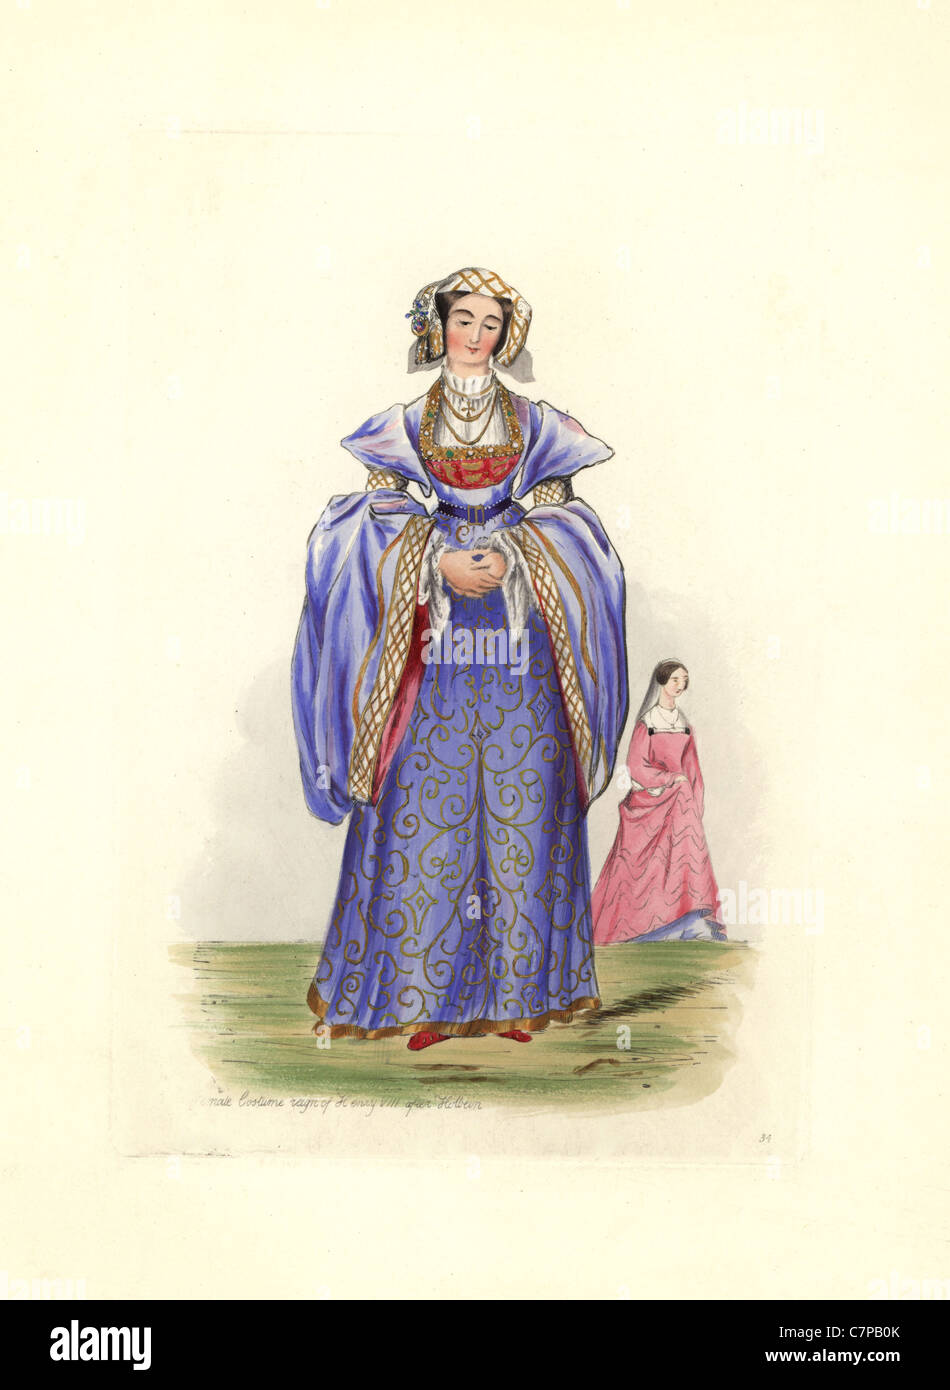 Female costume in the reign of Henry VIII after Holbein. - Stock Image